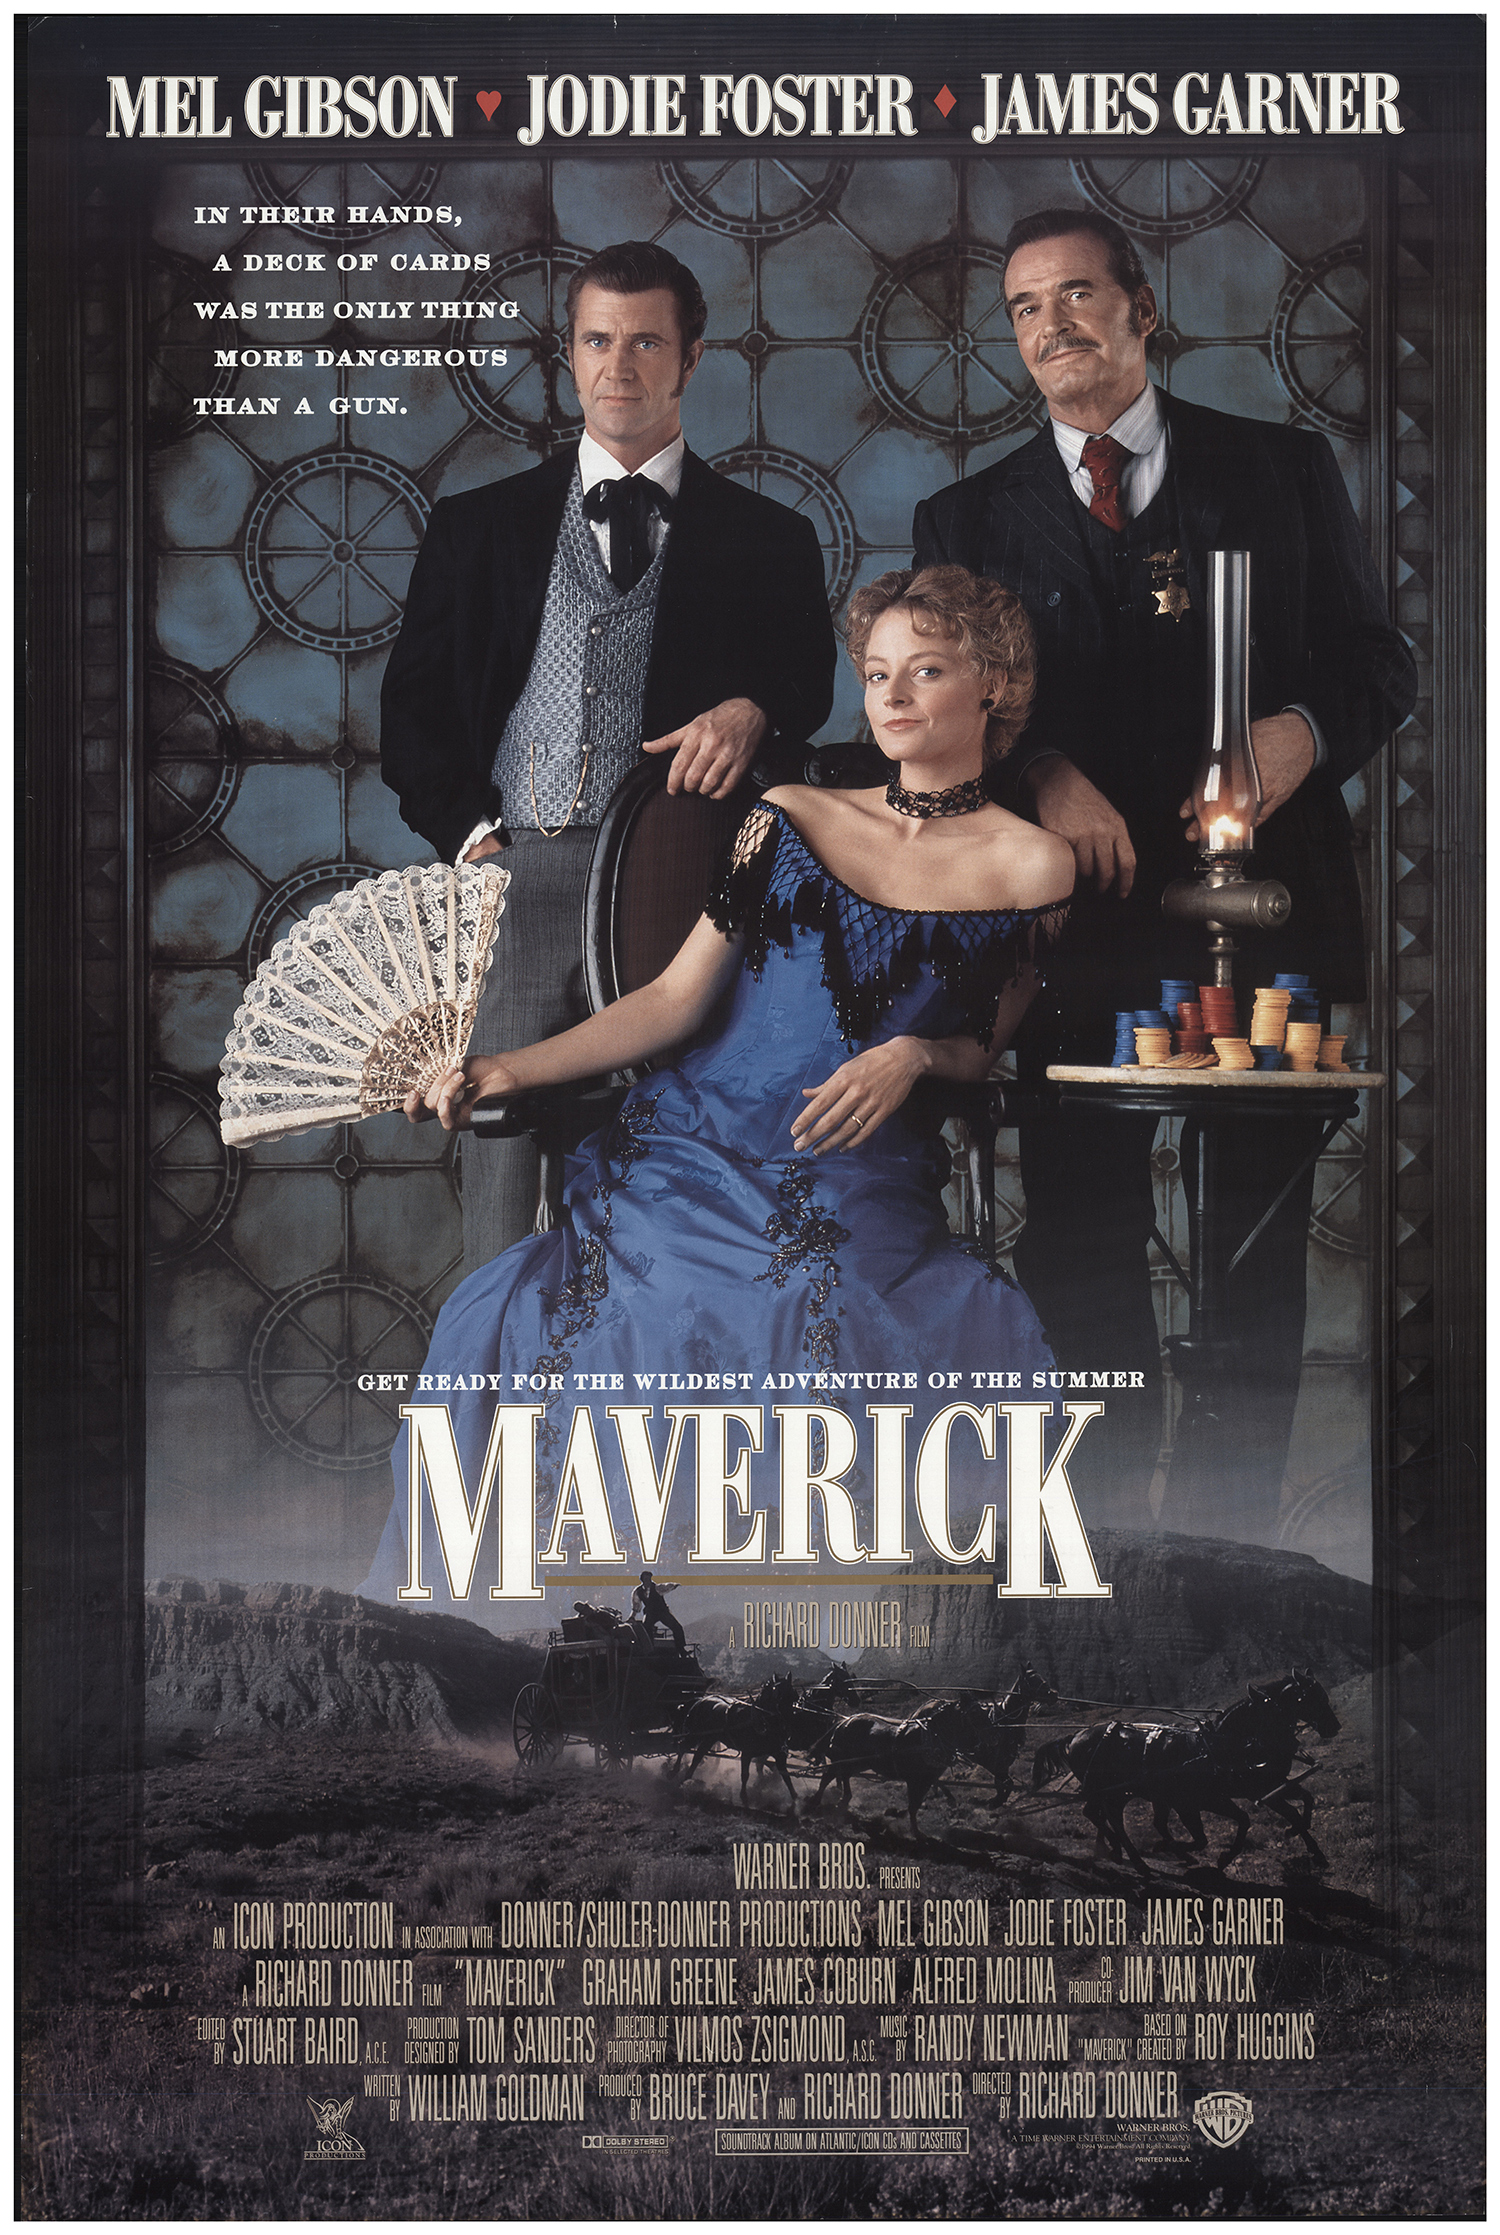 Maverick 1994 Original Movie Poster Fff 67889 Fffmovieposters Com